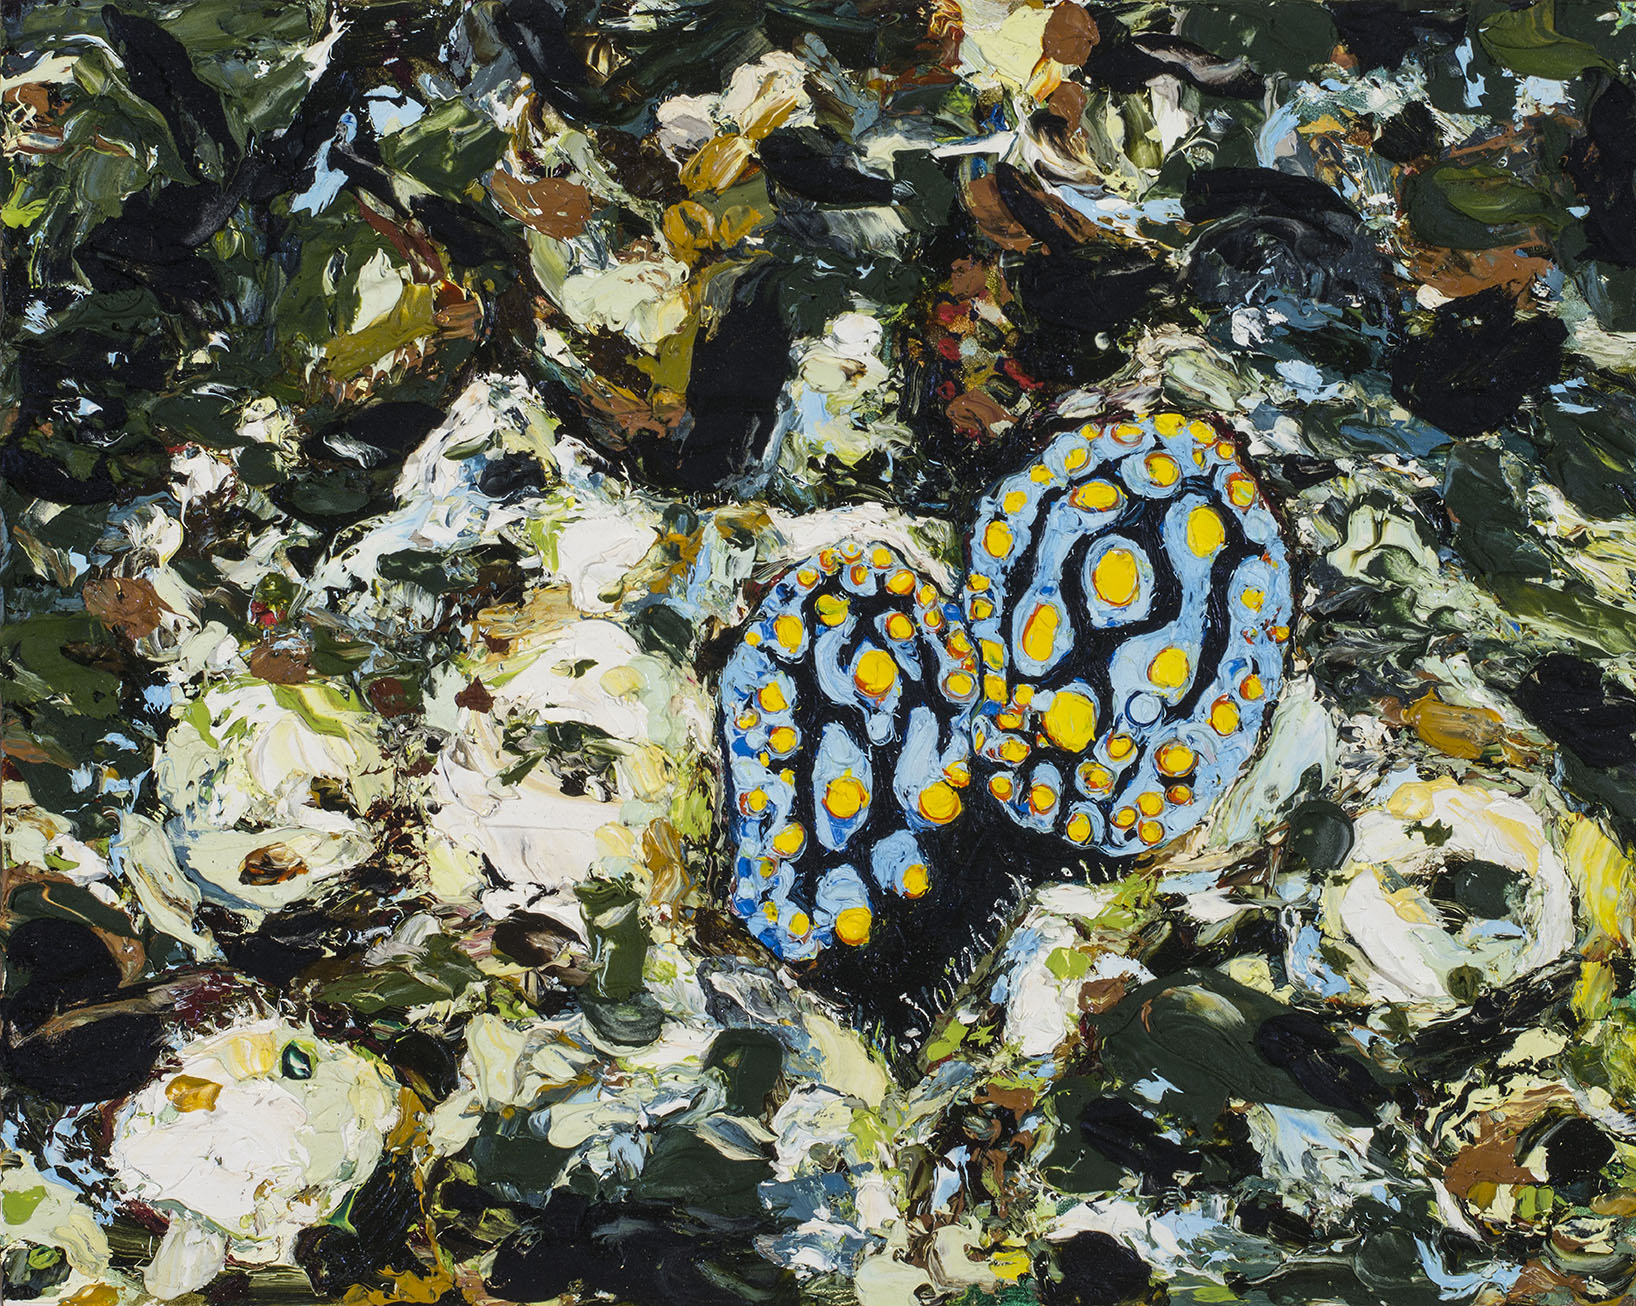 E Lindsay 2017 Nudibranches (private collection)